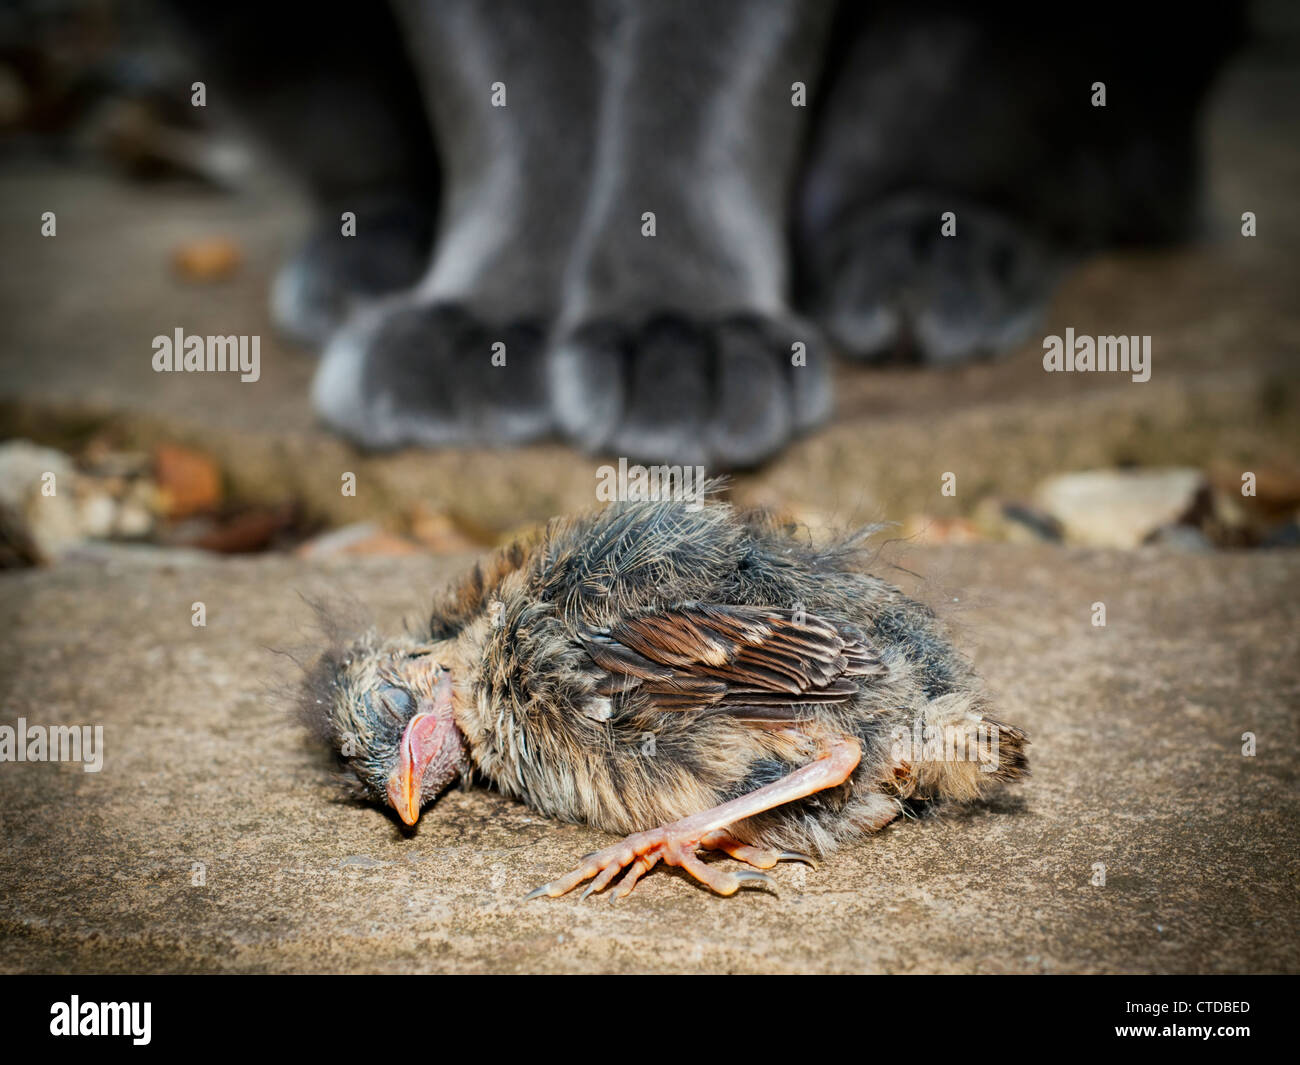 Young bird killed by domestic cat - Stock Image